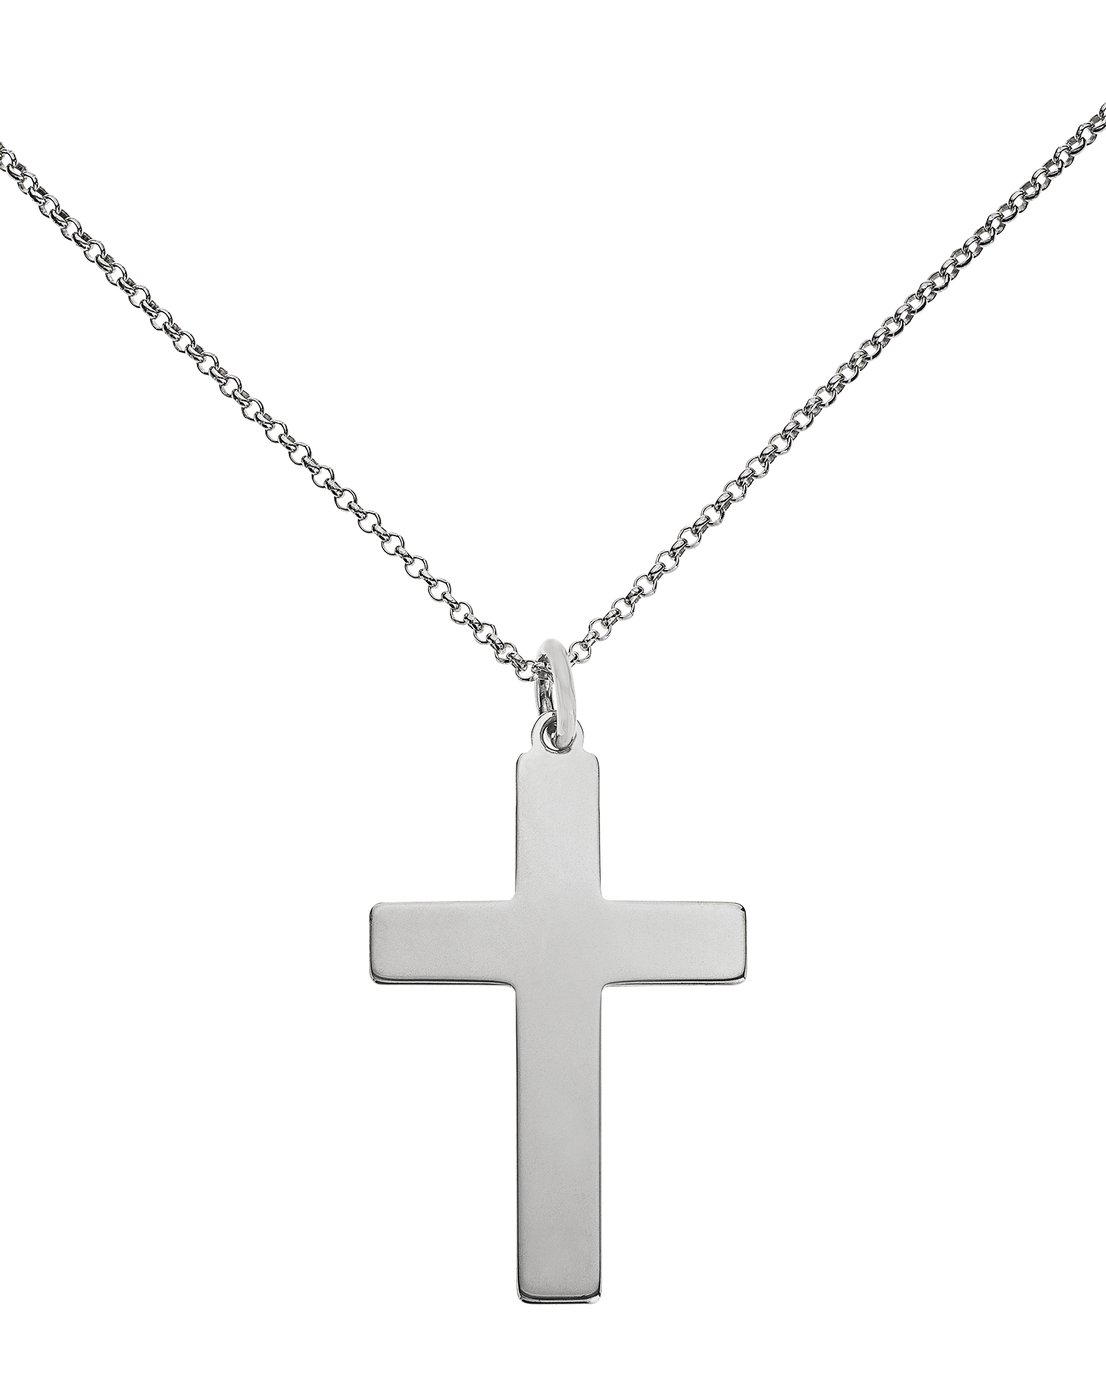 Image of Sterling Silver - Cross Pendant